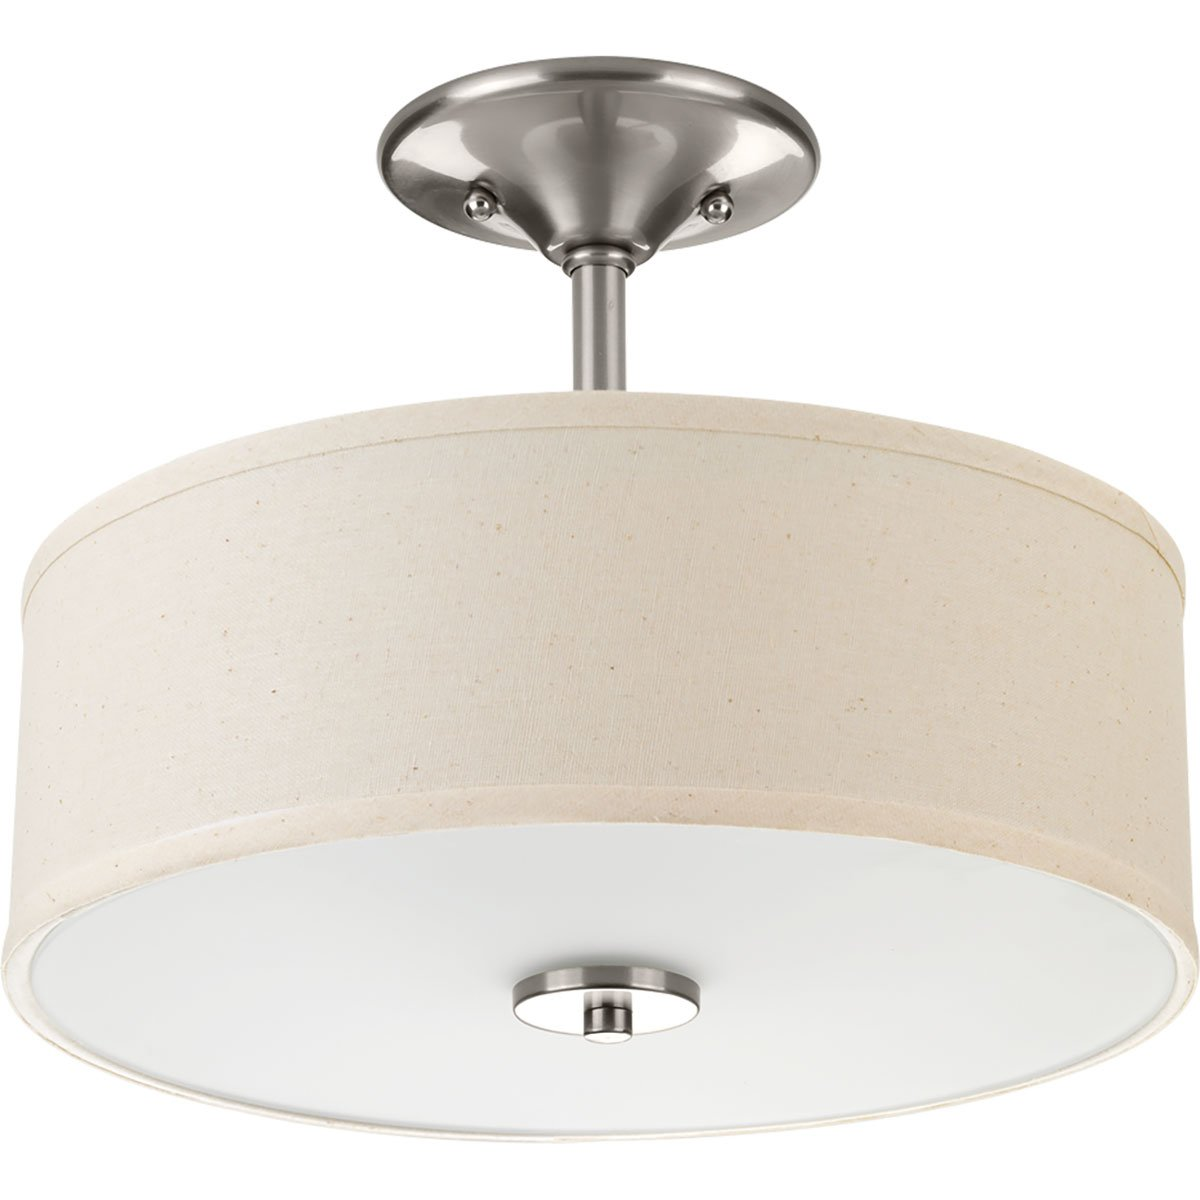 Progress Lighting P3712-09 Inspire Two-Light Semi-Flush, Brushed Nickel